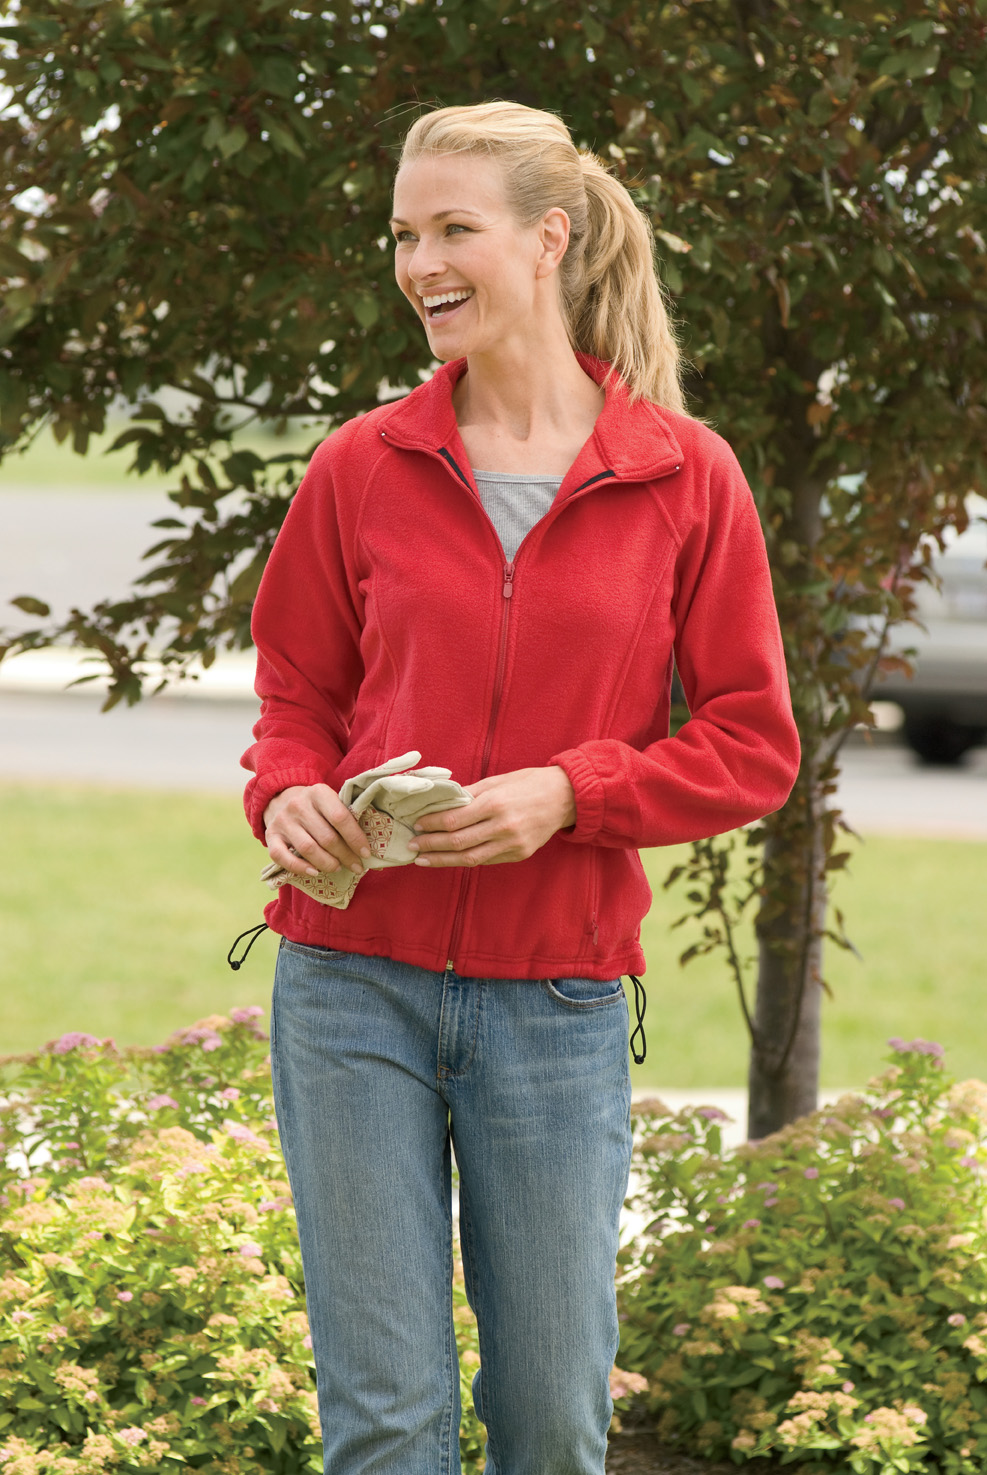 Harriton M990W Women's Full-Zip Fleece $13.18 - Women's Outerwear